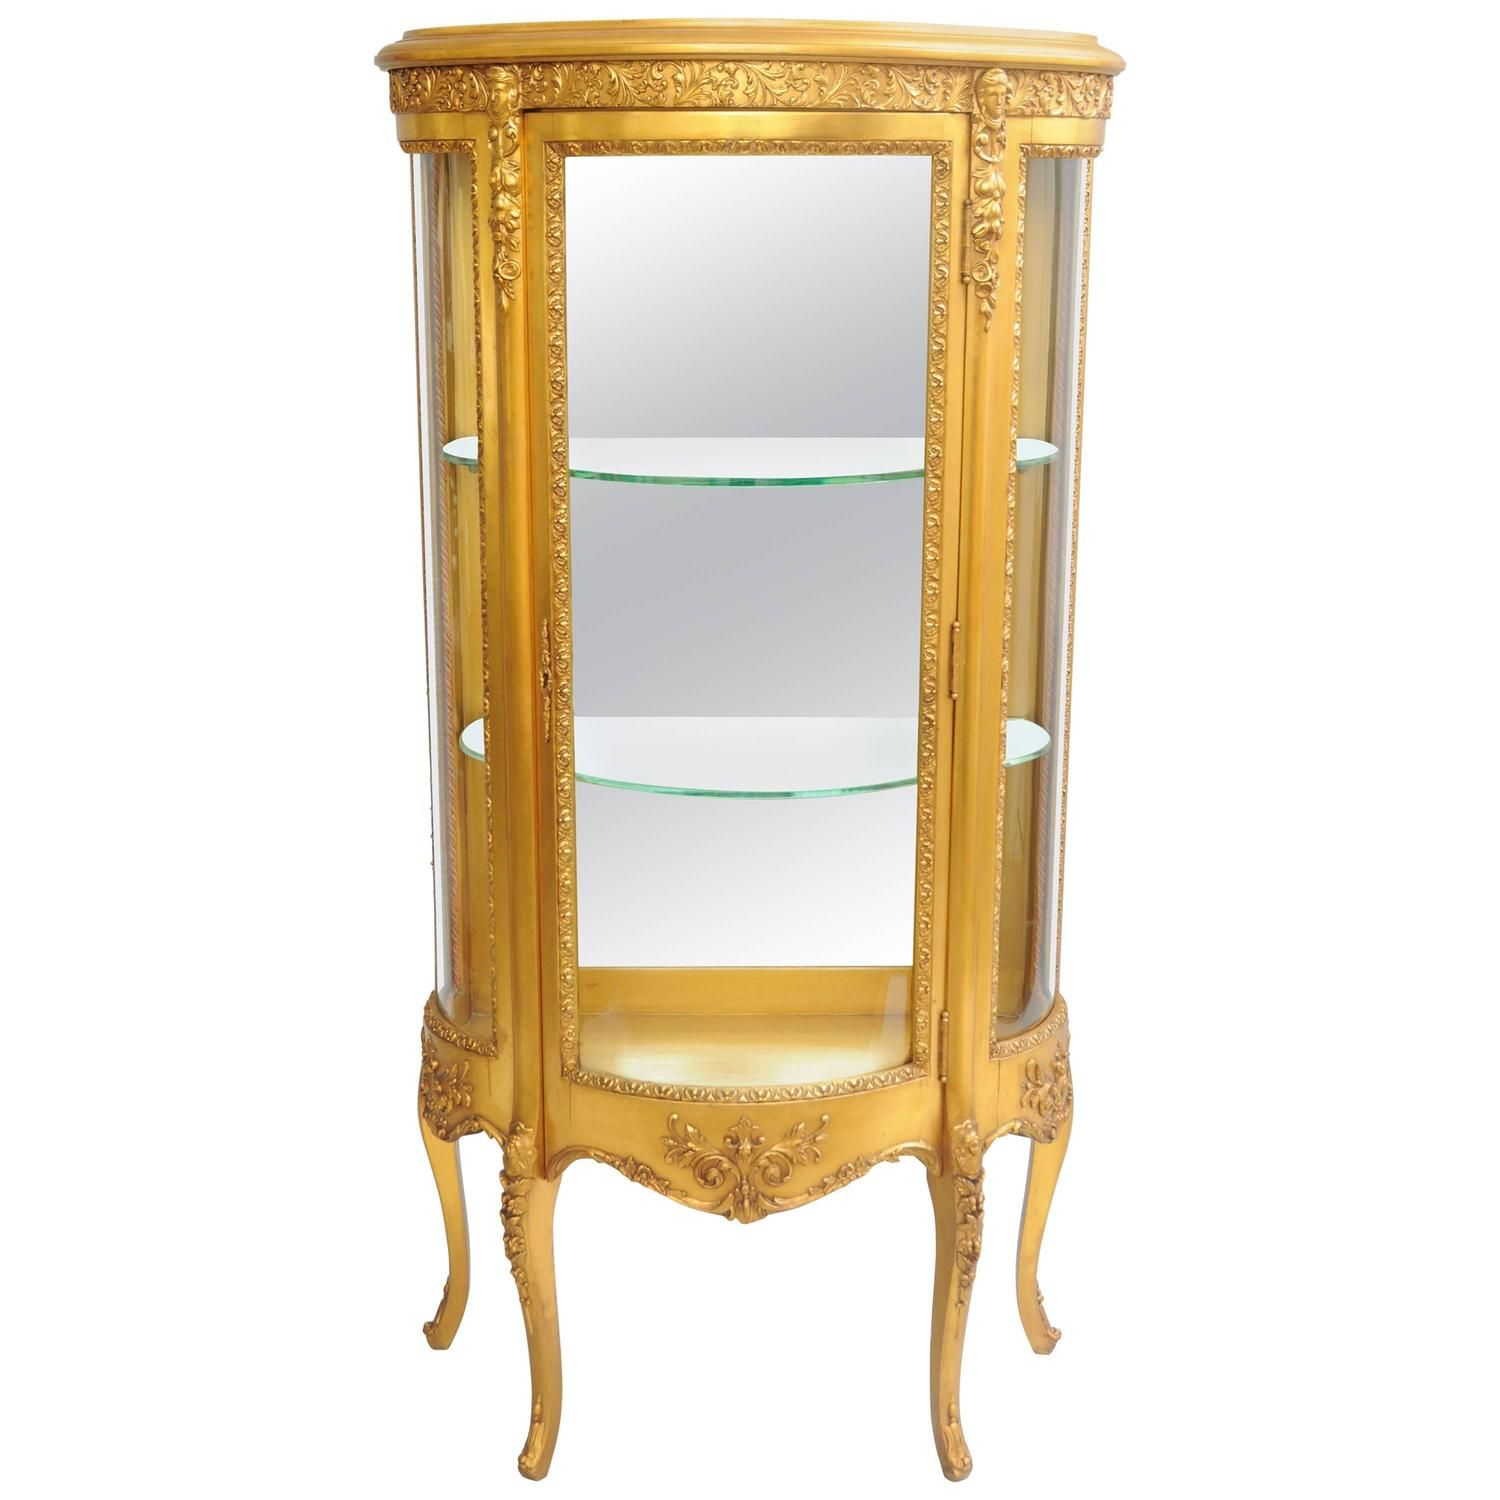 Small French Louis Xv Style Gold Giltwood Curved Glass Vitrine